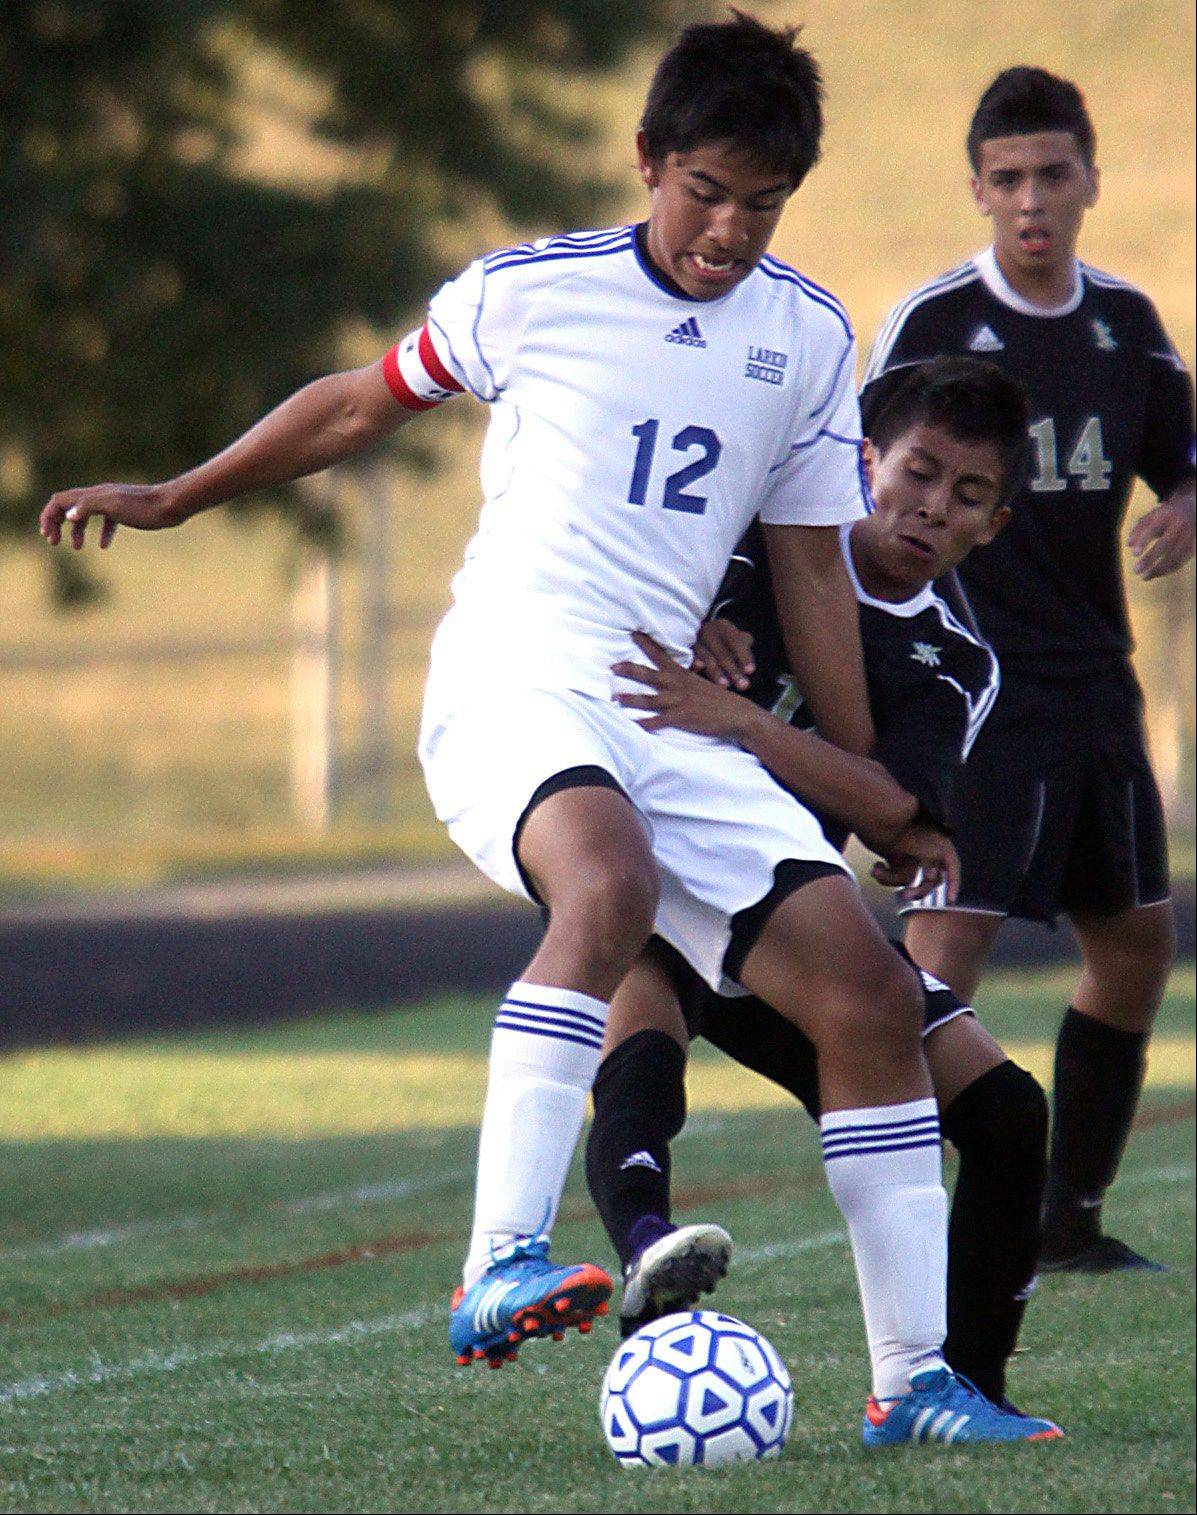 Larkin's Tony Hernandez, left, battles Streamwood's Edwin Rueda for the ball during Thursday's soccer game at Memorial Field in Elgin.